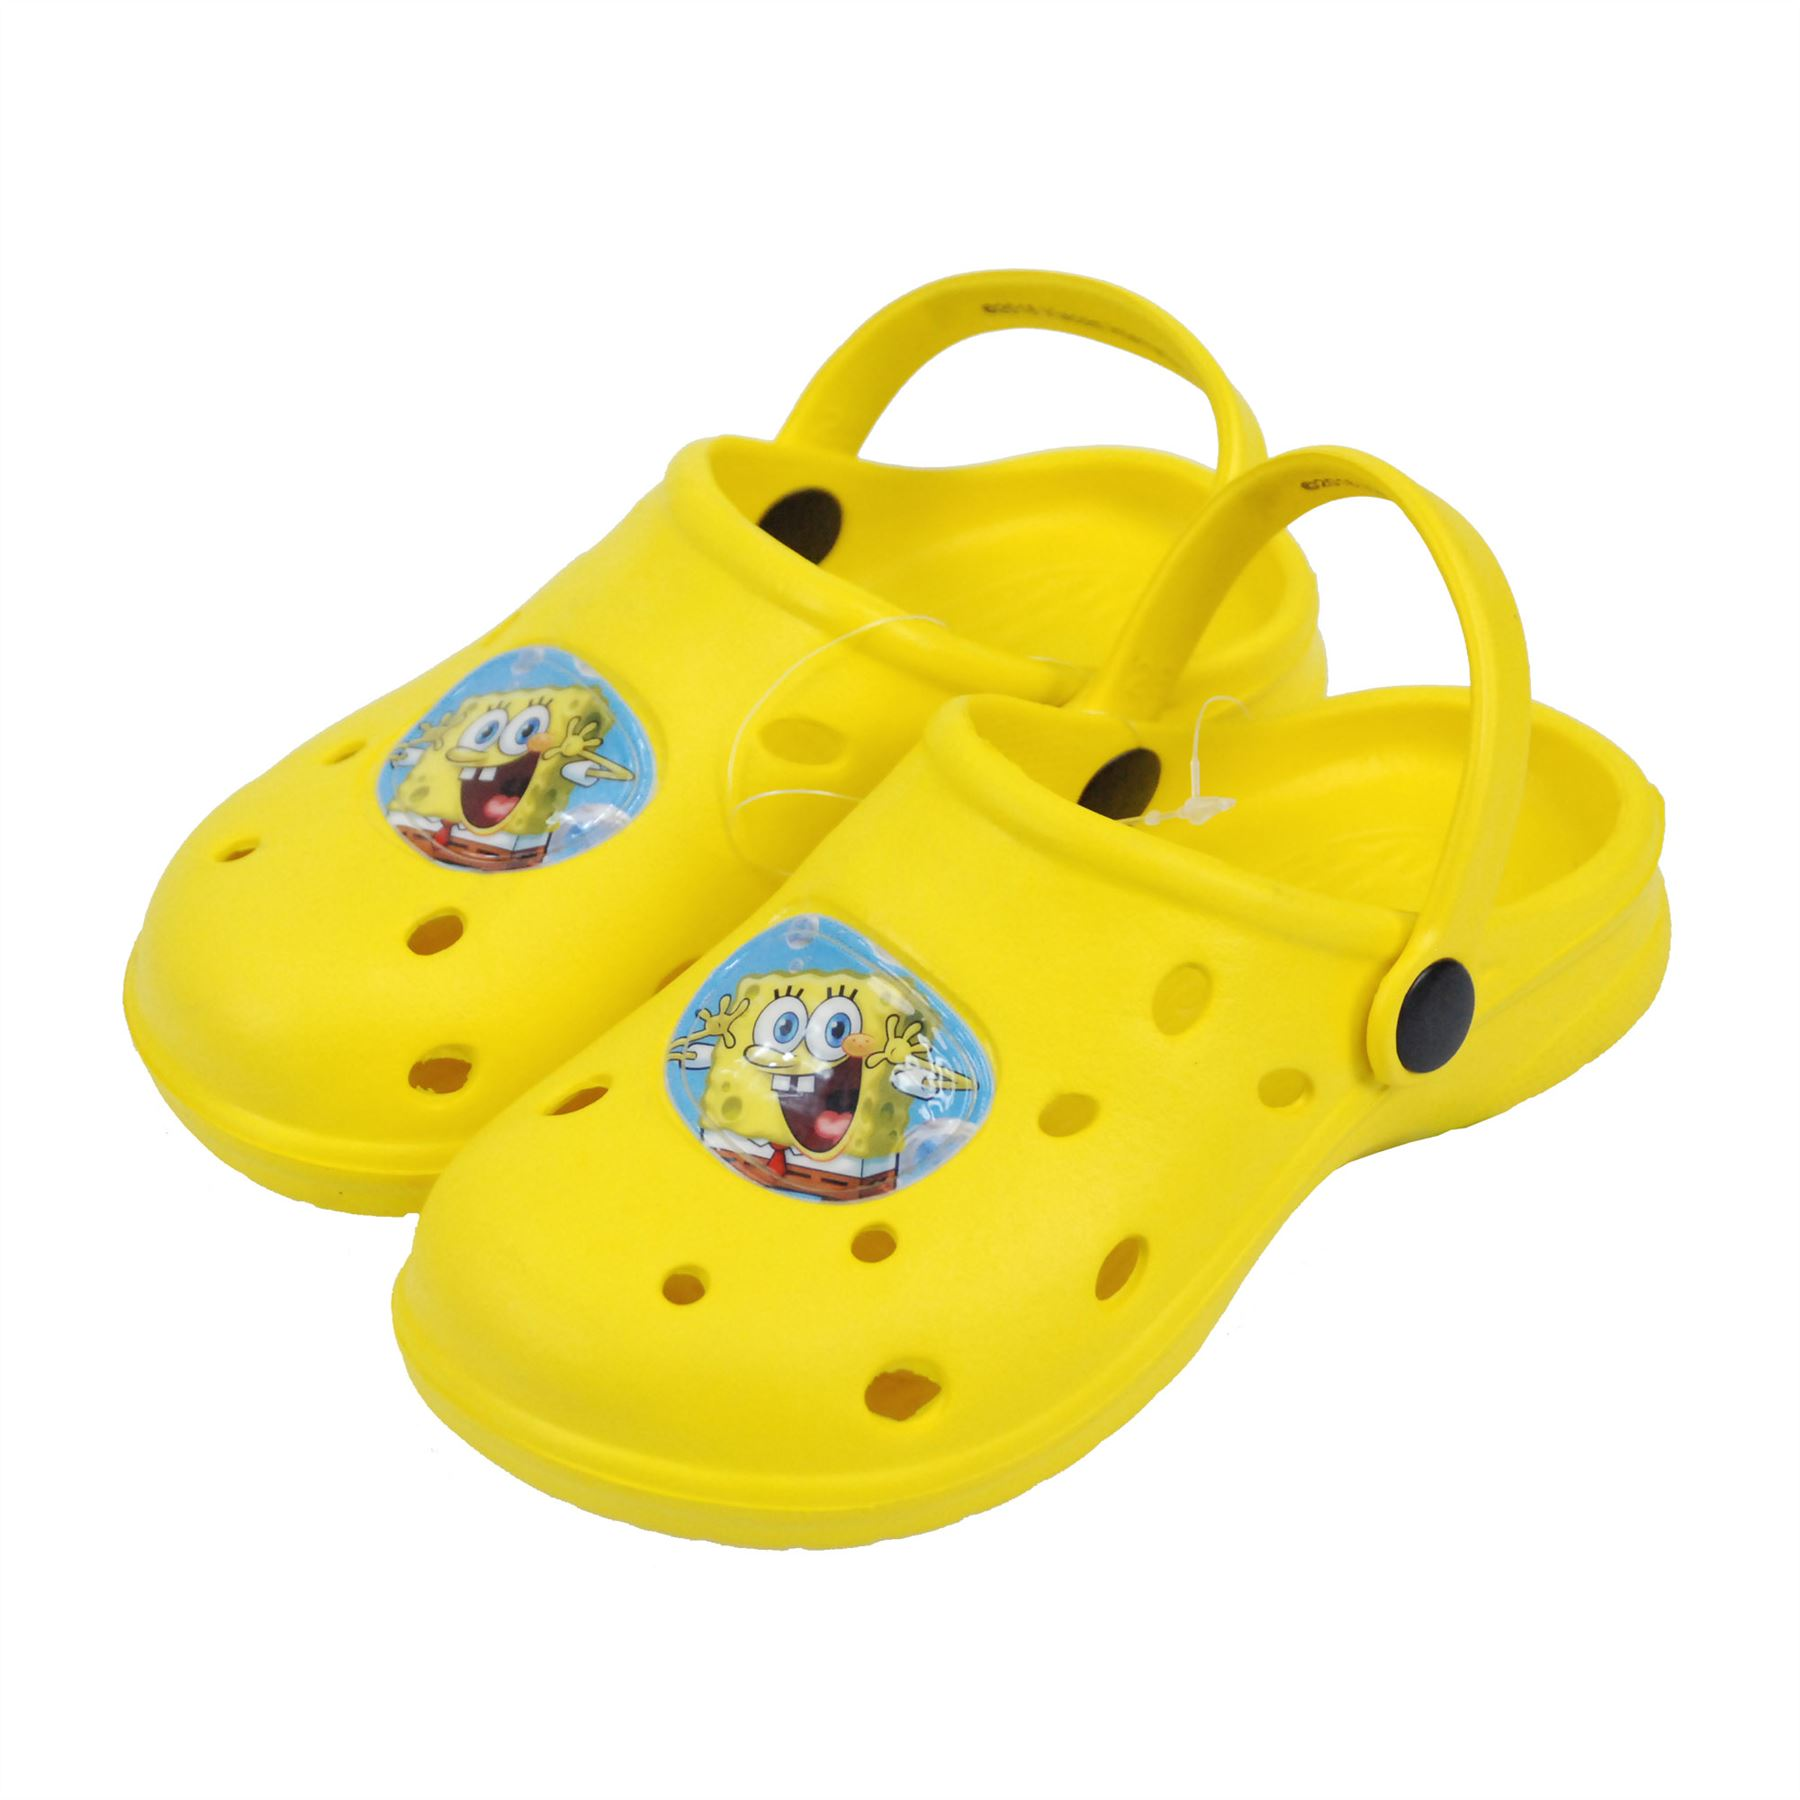 050585fa52c58 Details about Nickelodeon® SpongeBob Kids Boys Sandals Beach Slippers Shoes  UK Sizes 5 to 1